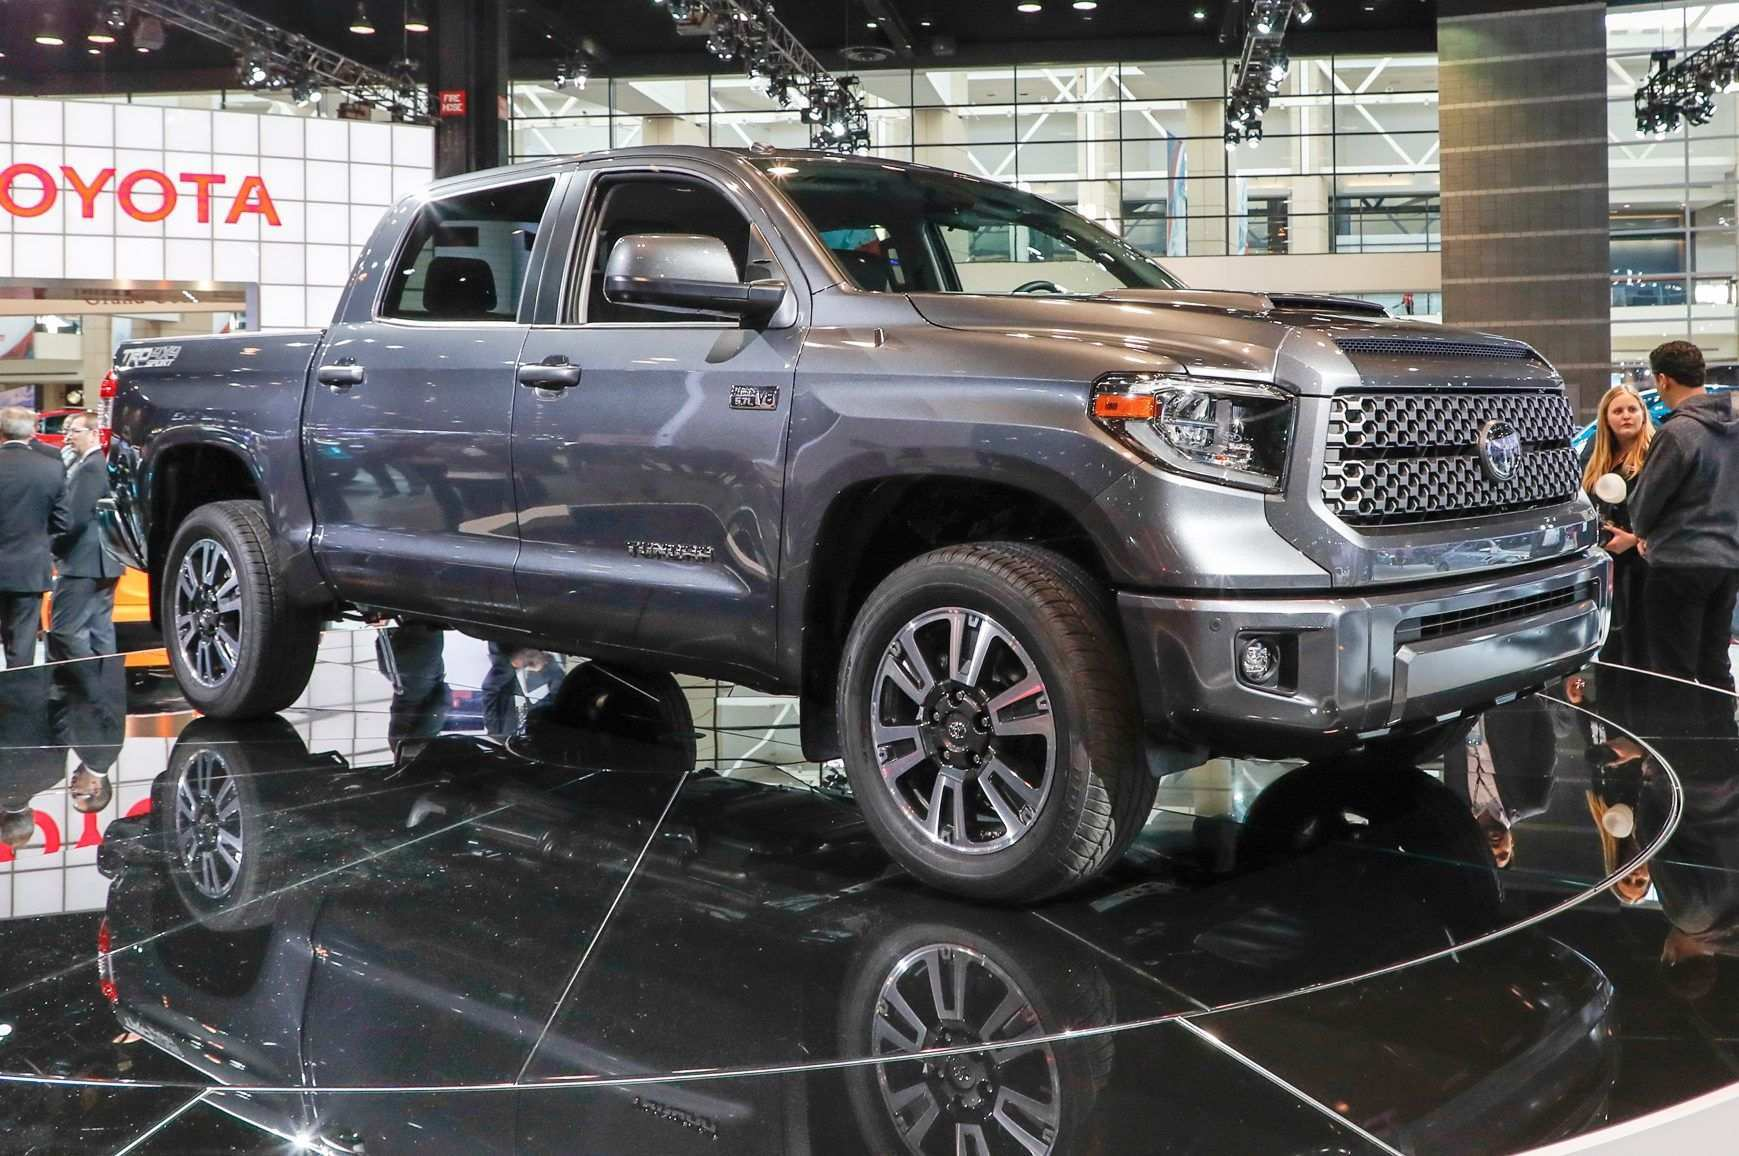 90 The Best 2019 Toyota Sequoia Spy Photos Release Date